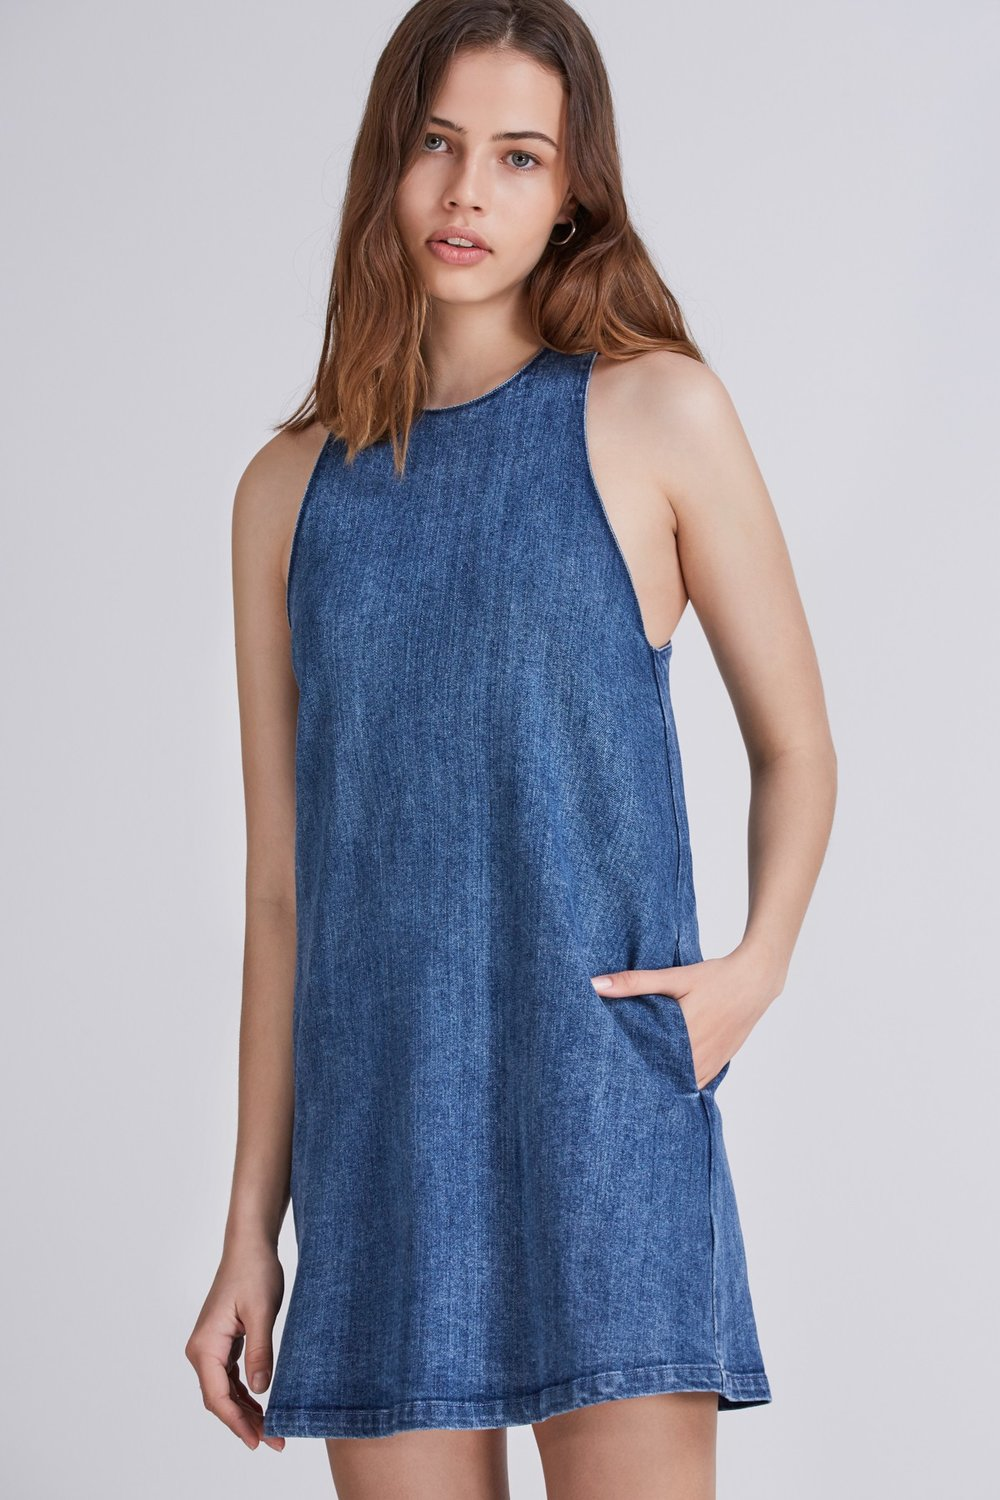 The Fifth Label One Way Ticket Dress.